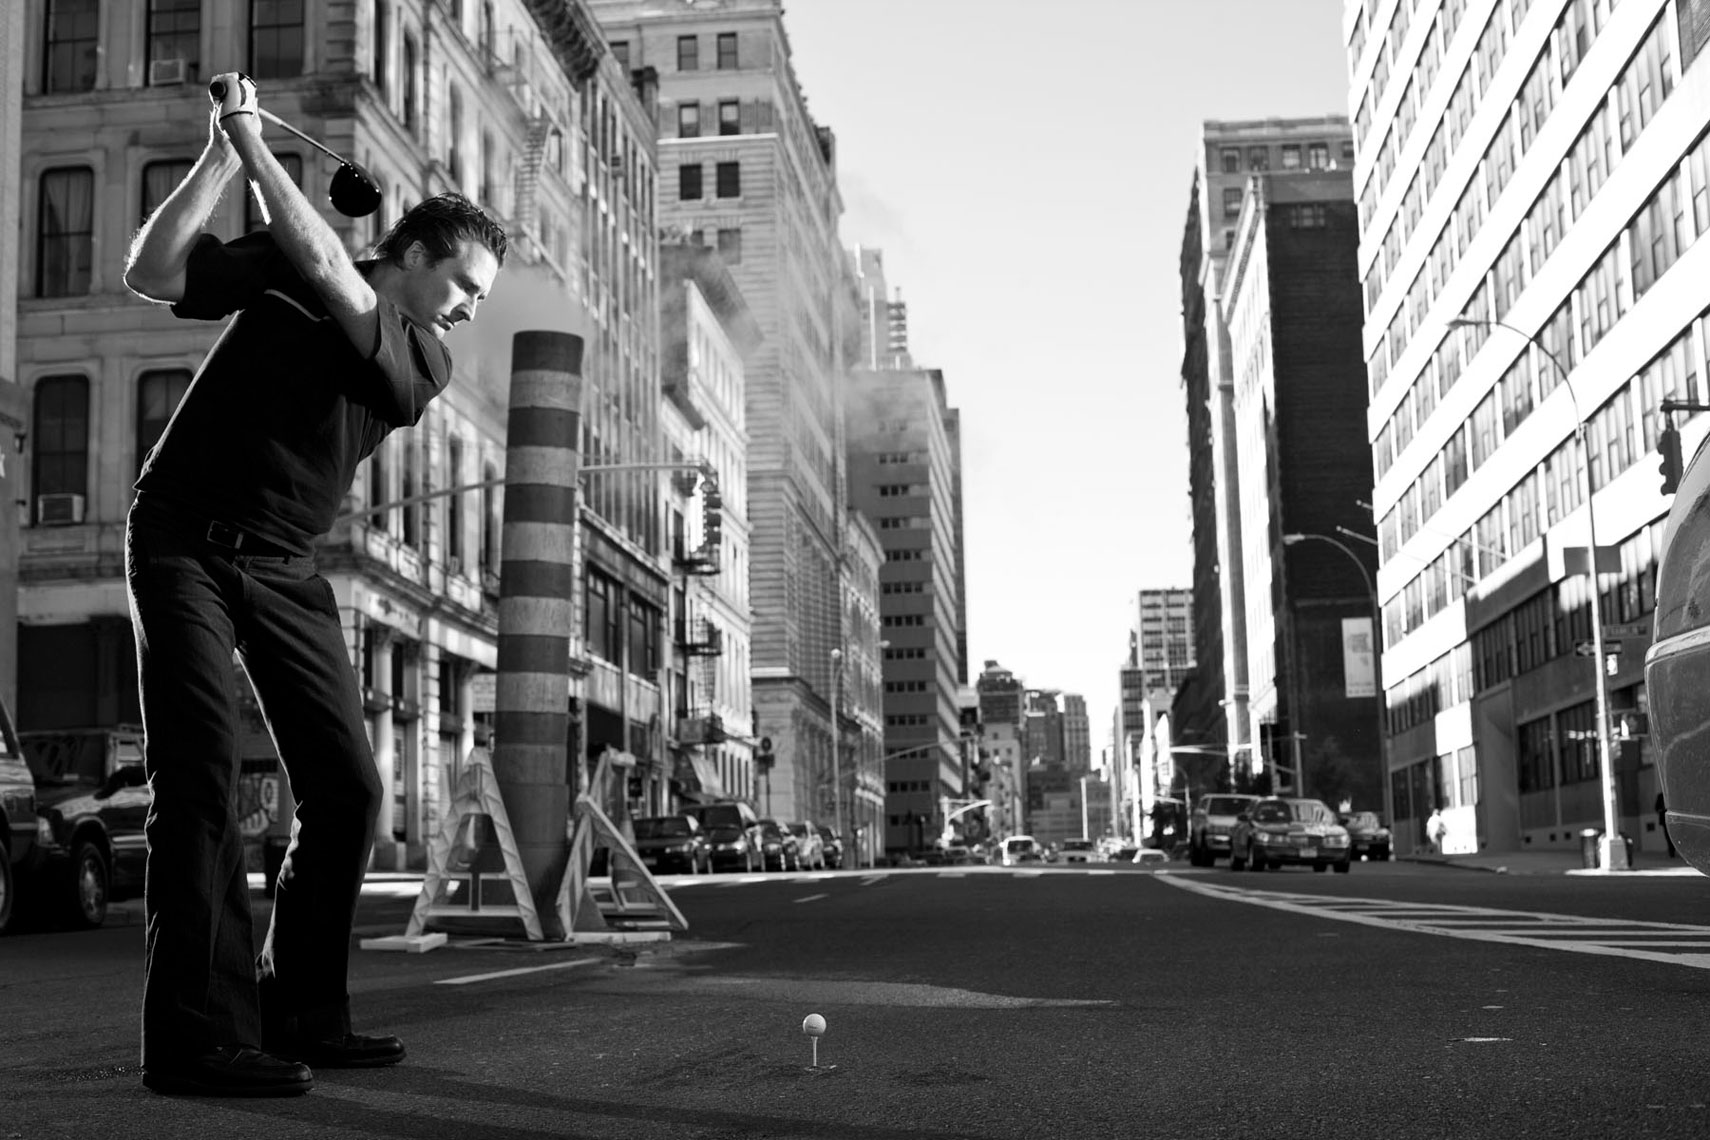 street golf photo by monte isom